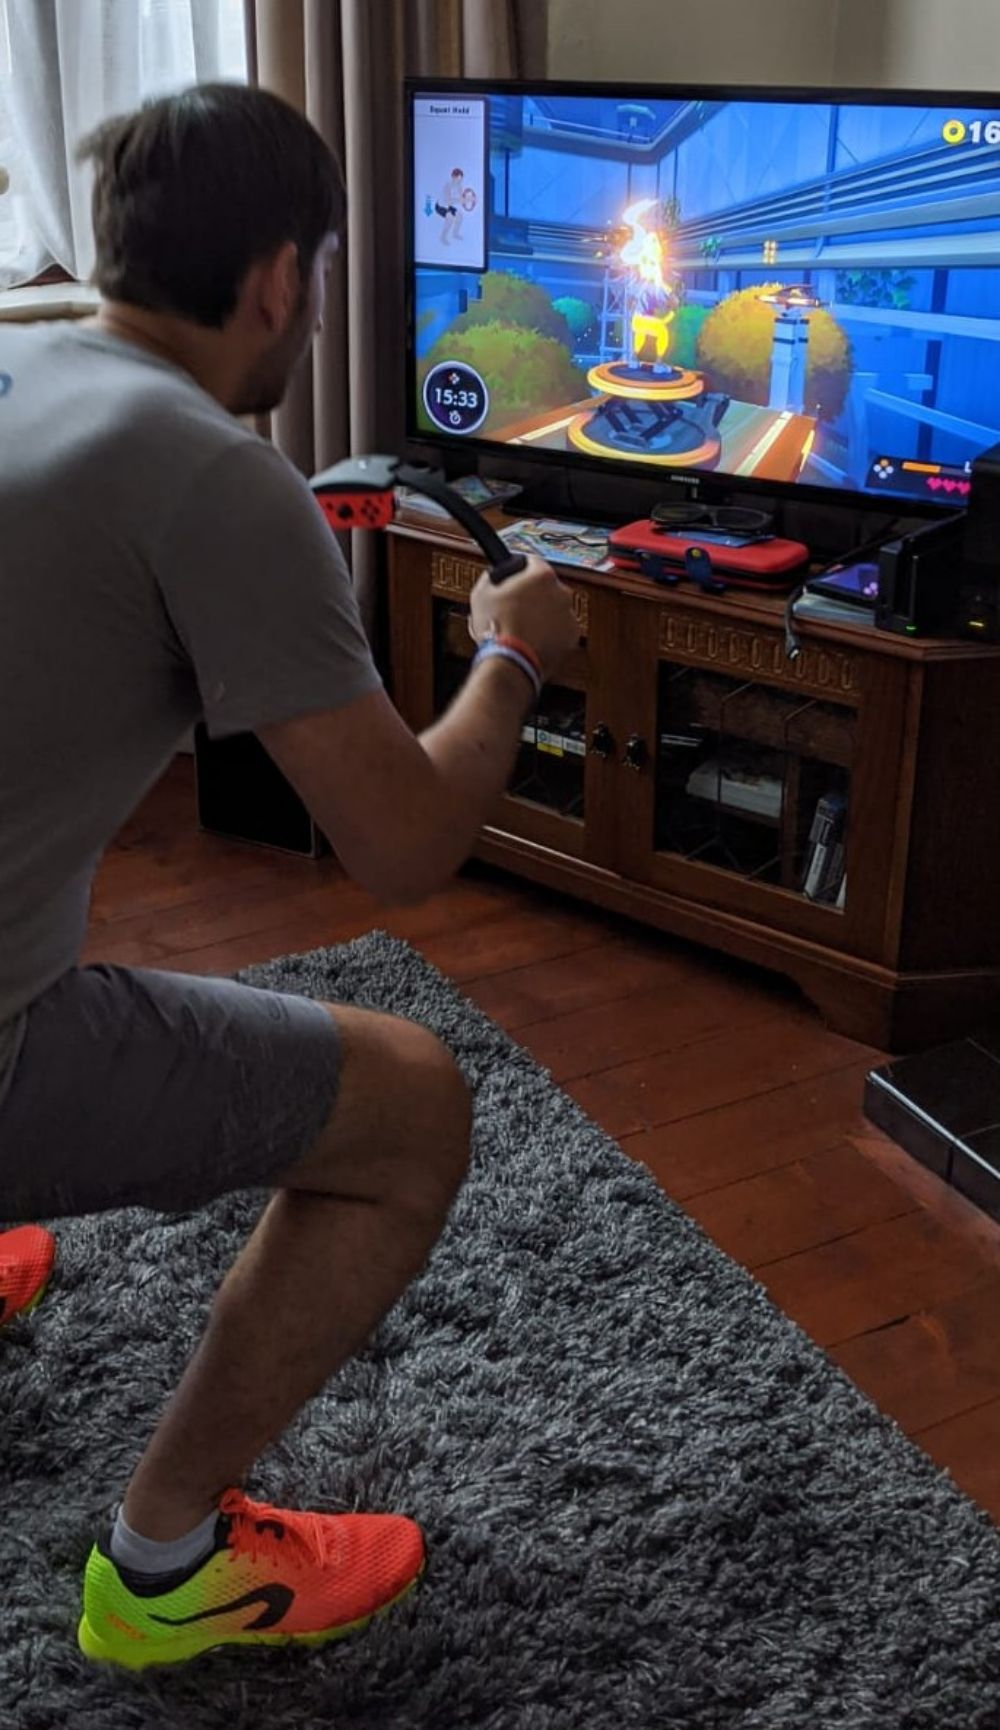 Jamie squatting, playing Ring Fit Adventures on the Nintento Switch, with his new trainers visible, with a fade from florescent orange to yellow